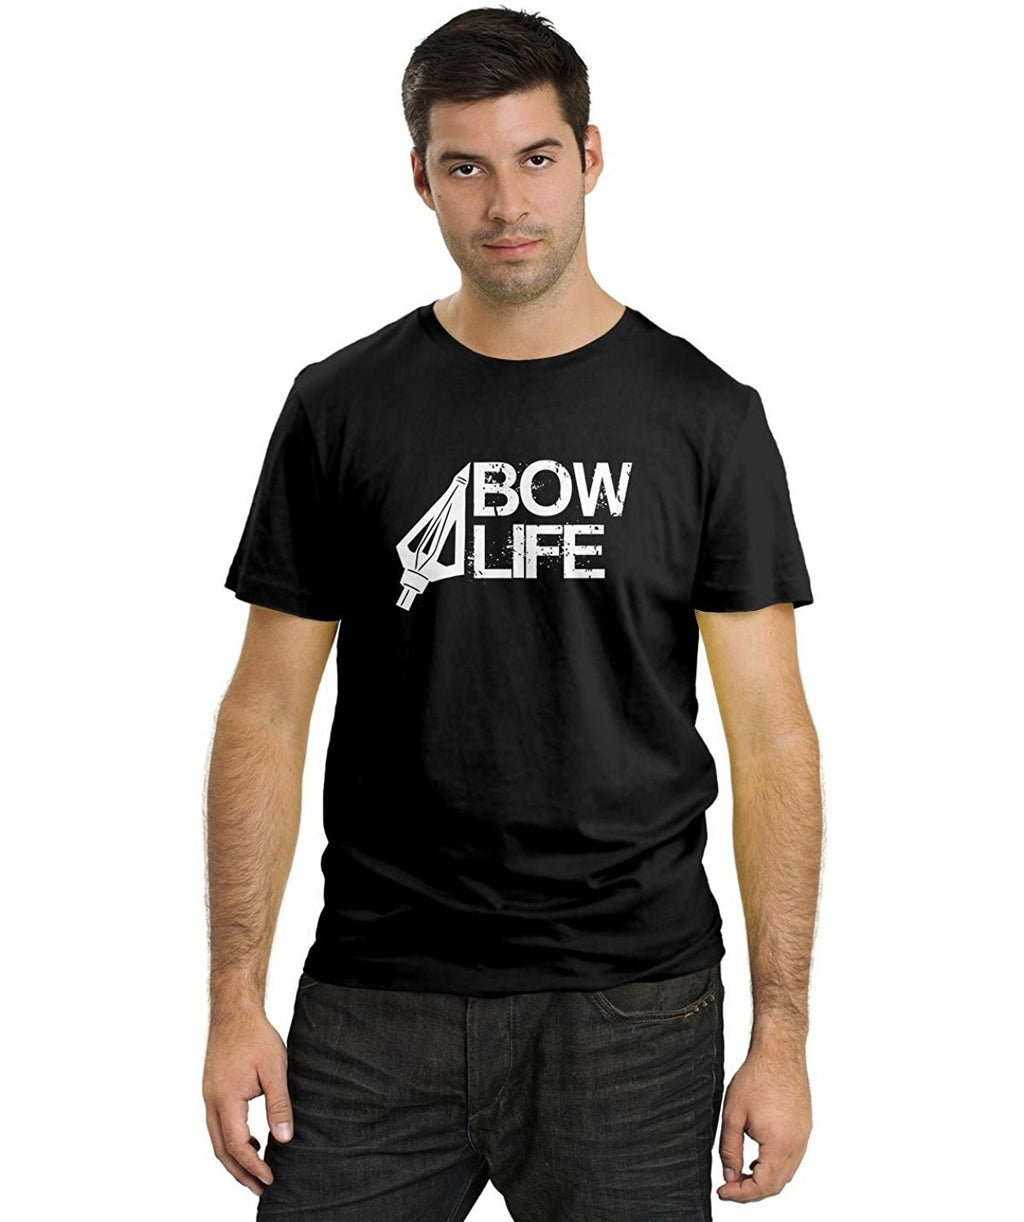 2019 Cool Men Tee Shirt Bow Life Graphic Tee